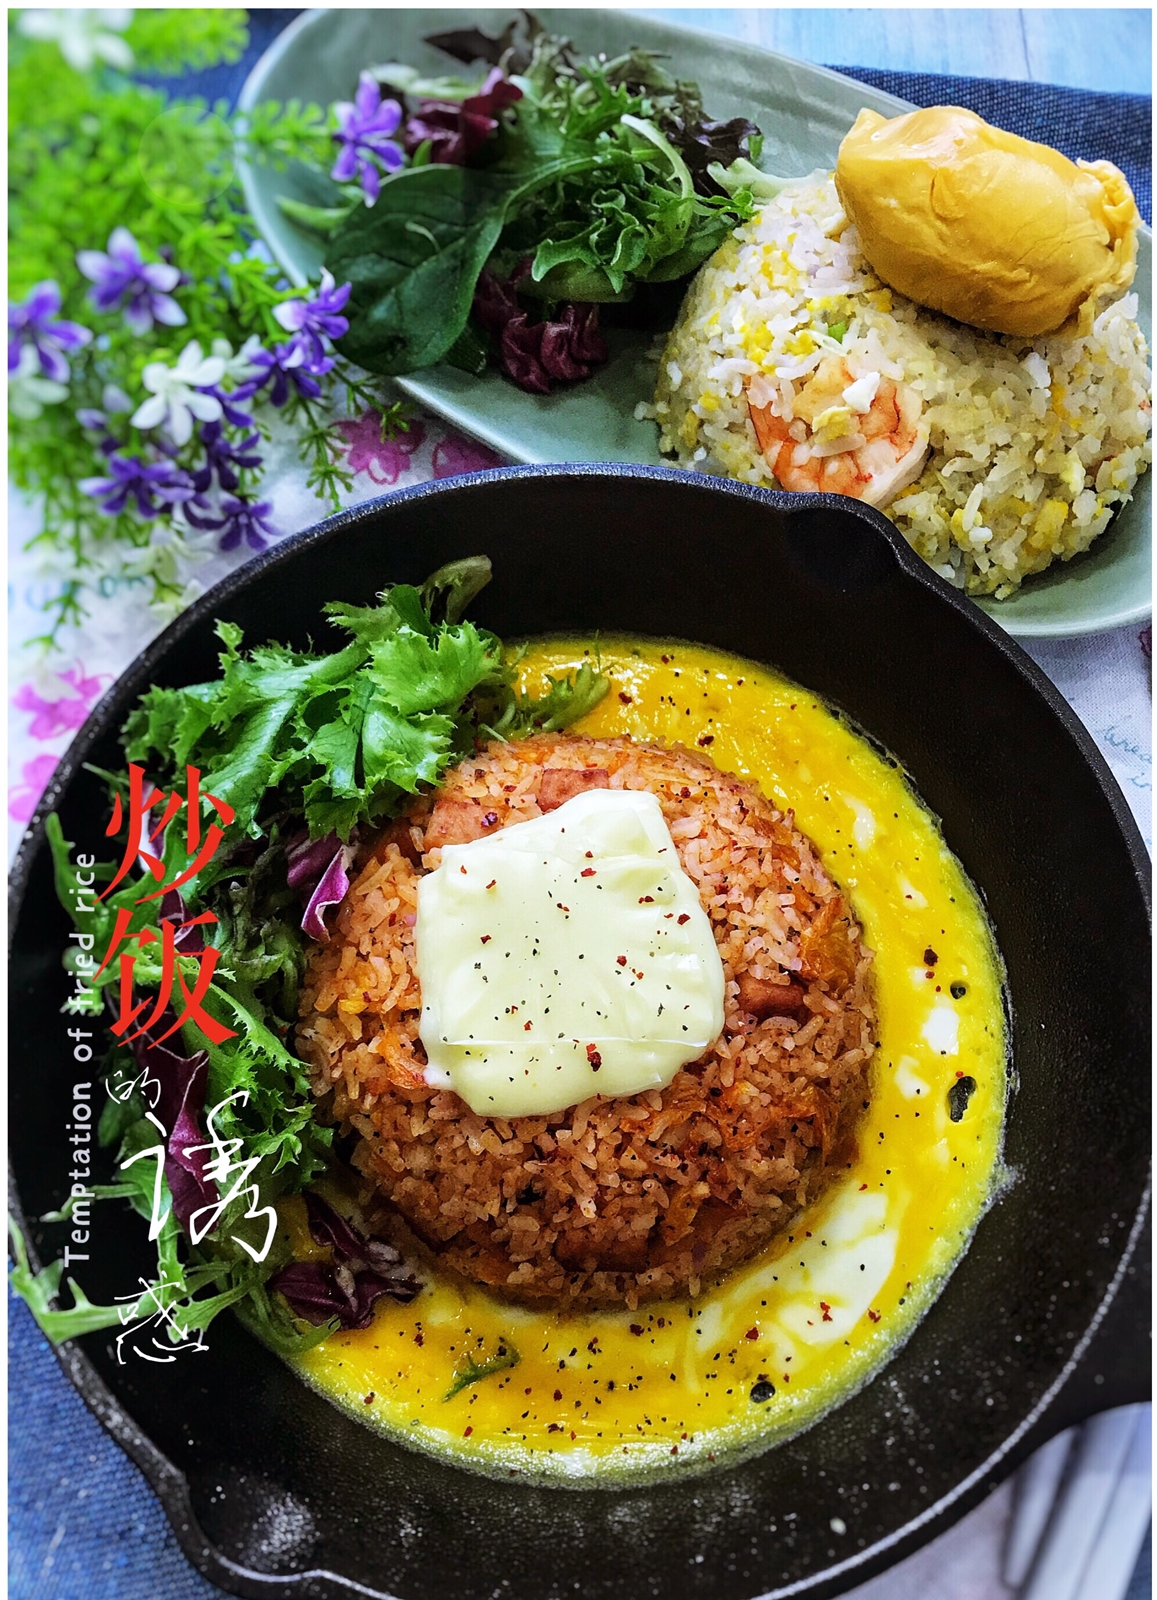 Cuisine paradise singapore food blog recipes reviews and travel fried rice is one of the easiest way to get a quick meal done in less than 15 minutes using whatever leftover ingredients that you have in the forumfinder Images